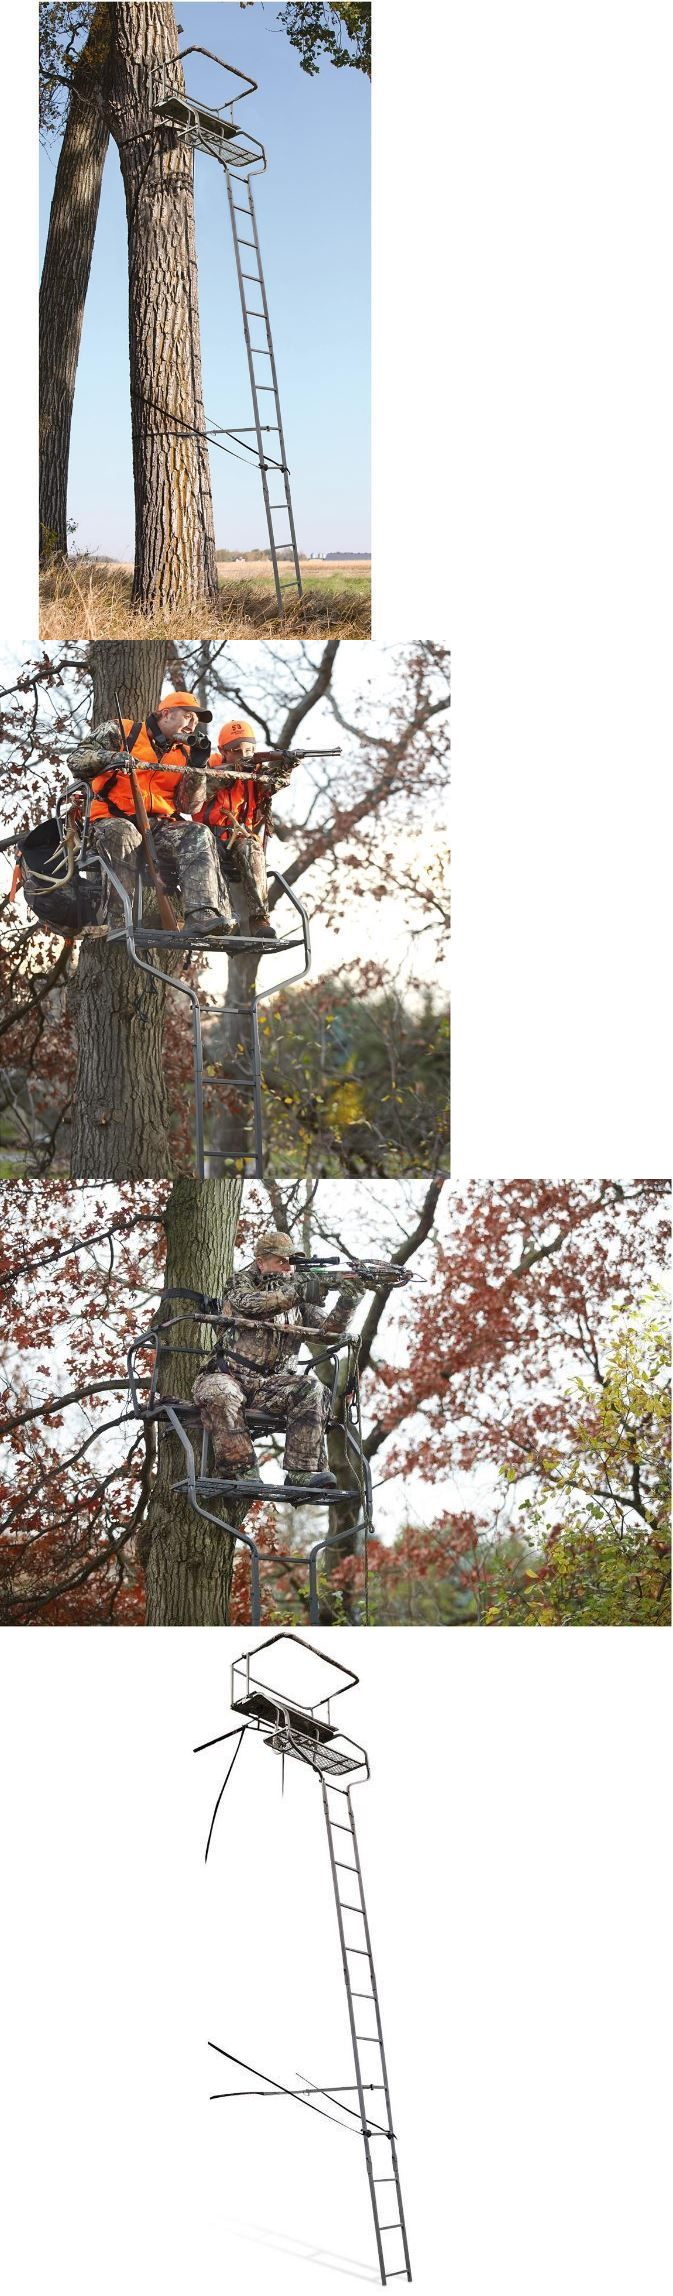 Tree Stands 52508: Tree Stand Ladder Hunting 18 Feet 2 Man Foot Rest Shooting Outdoors Archery New BUY IT NOW ONLY: $152.59